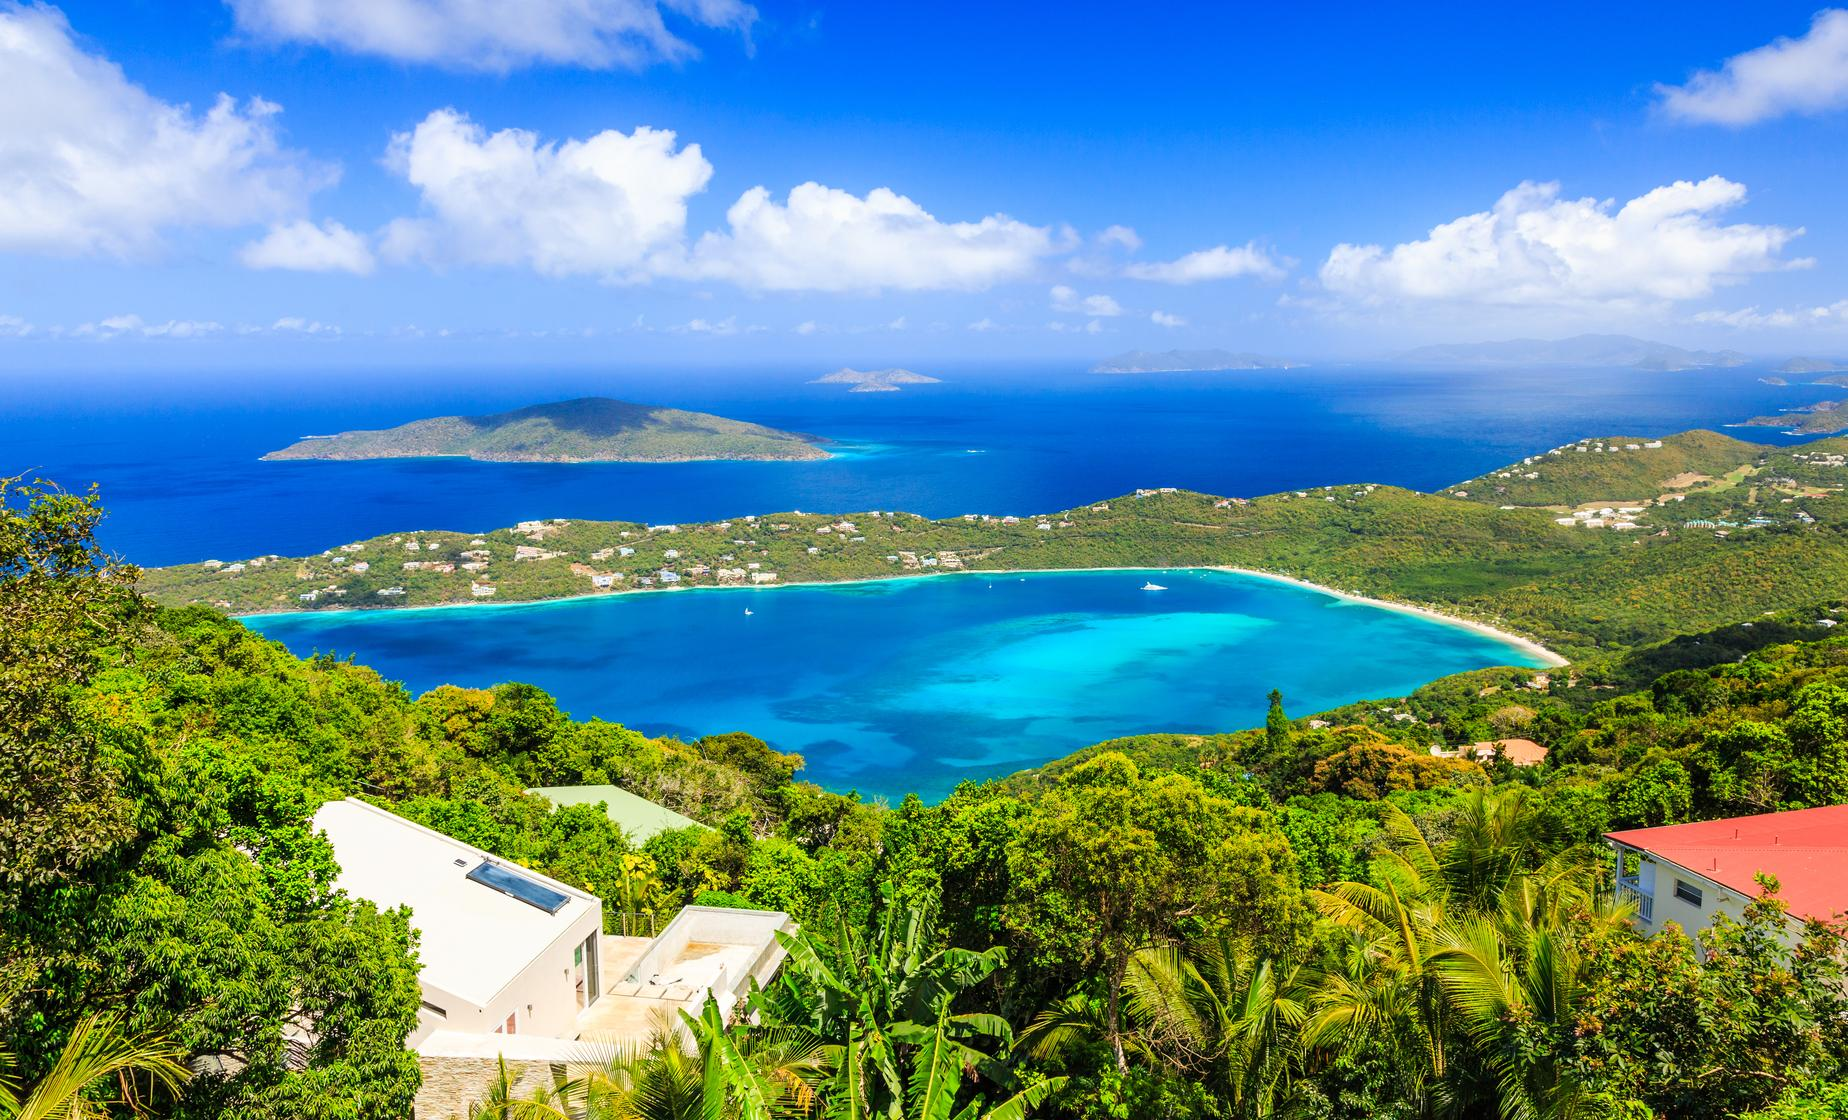 St. Thomas Island Overview